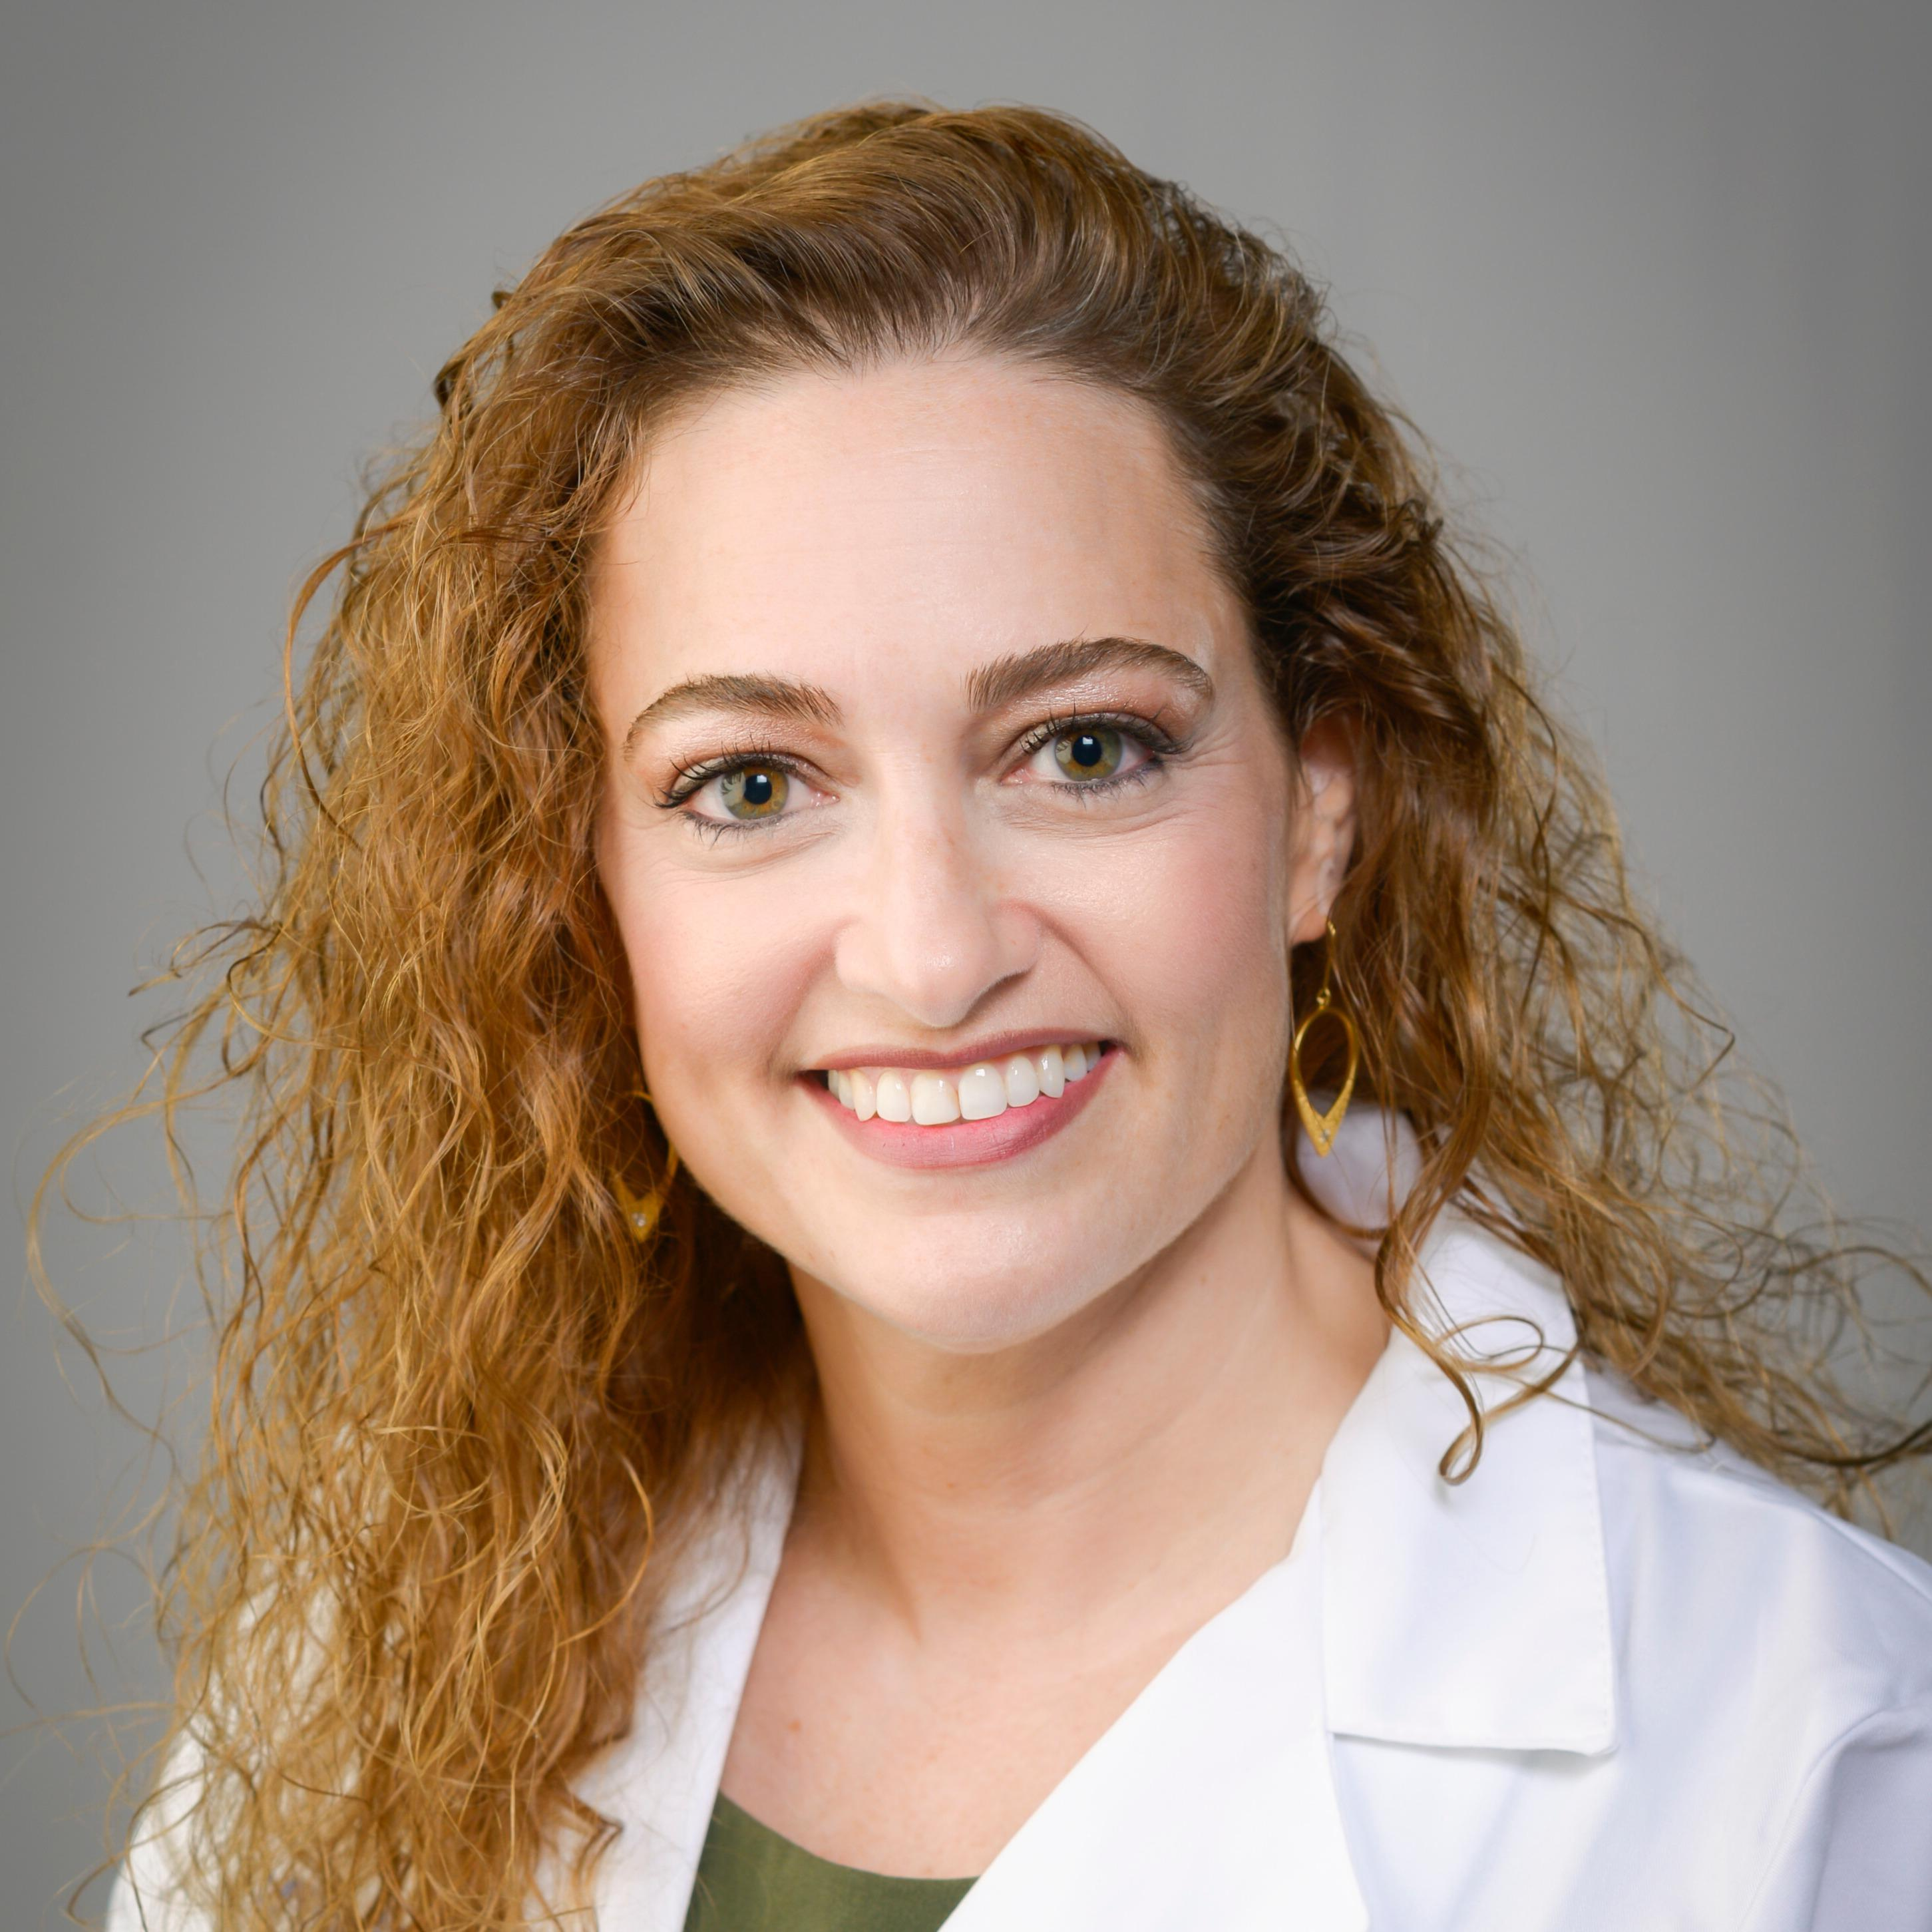 Image For Dr. Michele Jacqueline Alkalay MD